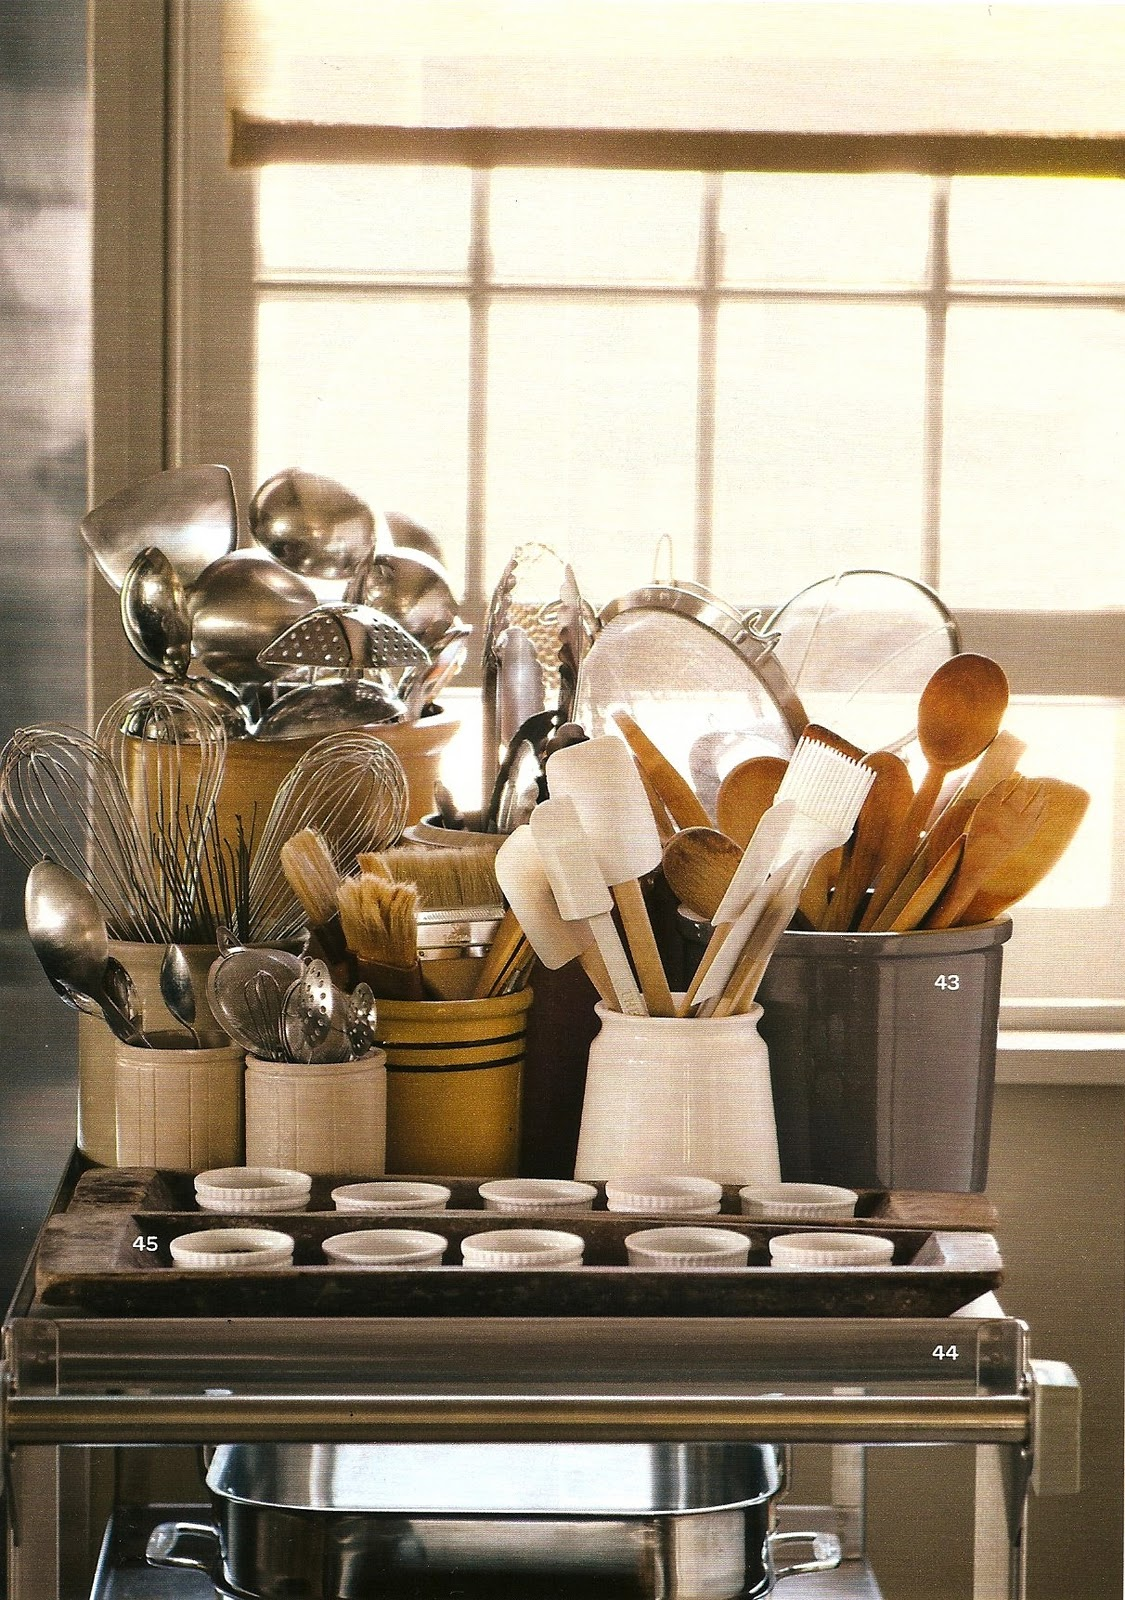 Kitchen Utensils Store How To Refinish Sink Your A Bowl Full Of Lemons